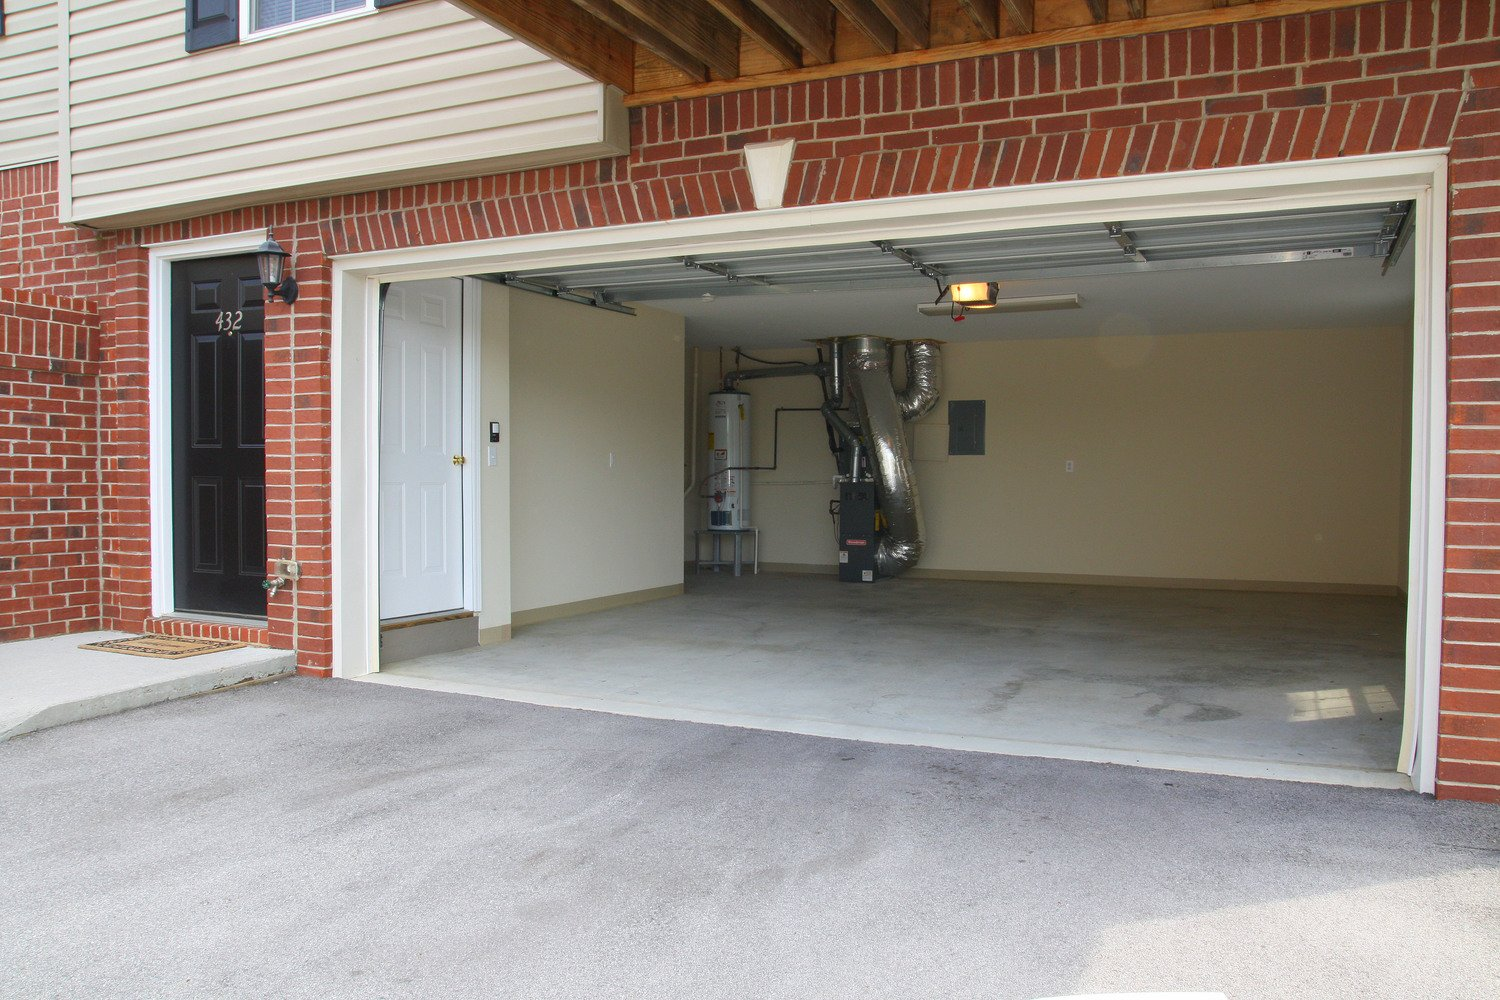 Lincoln, Windsor and Chatsworth models include an attached 2-car garage, with extra storage beneath the stairs.